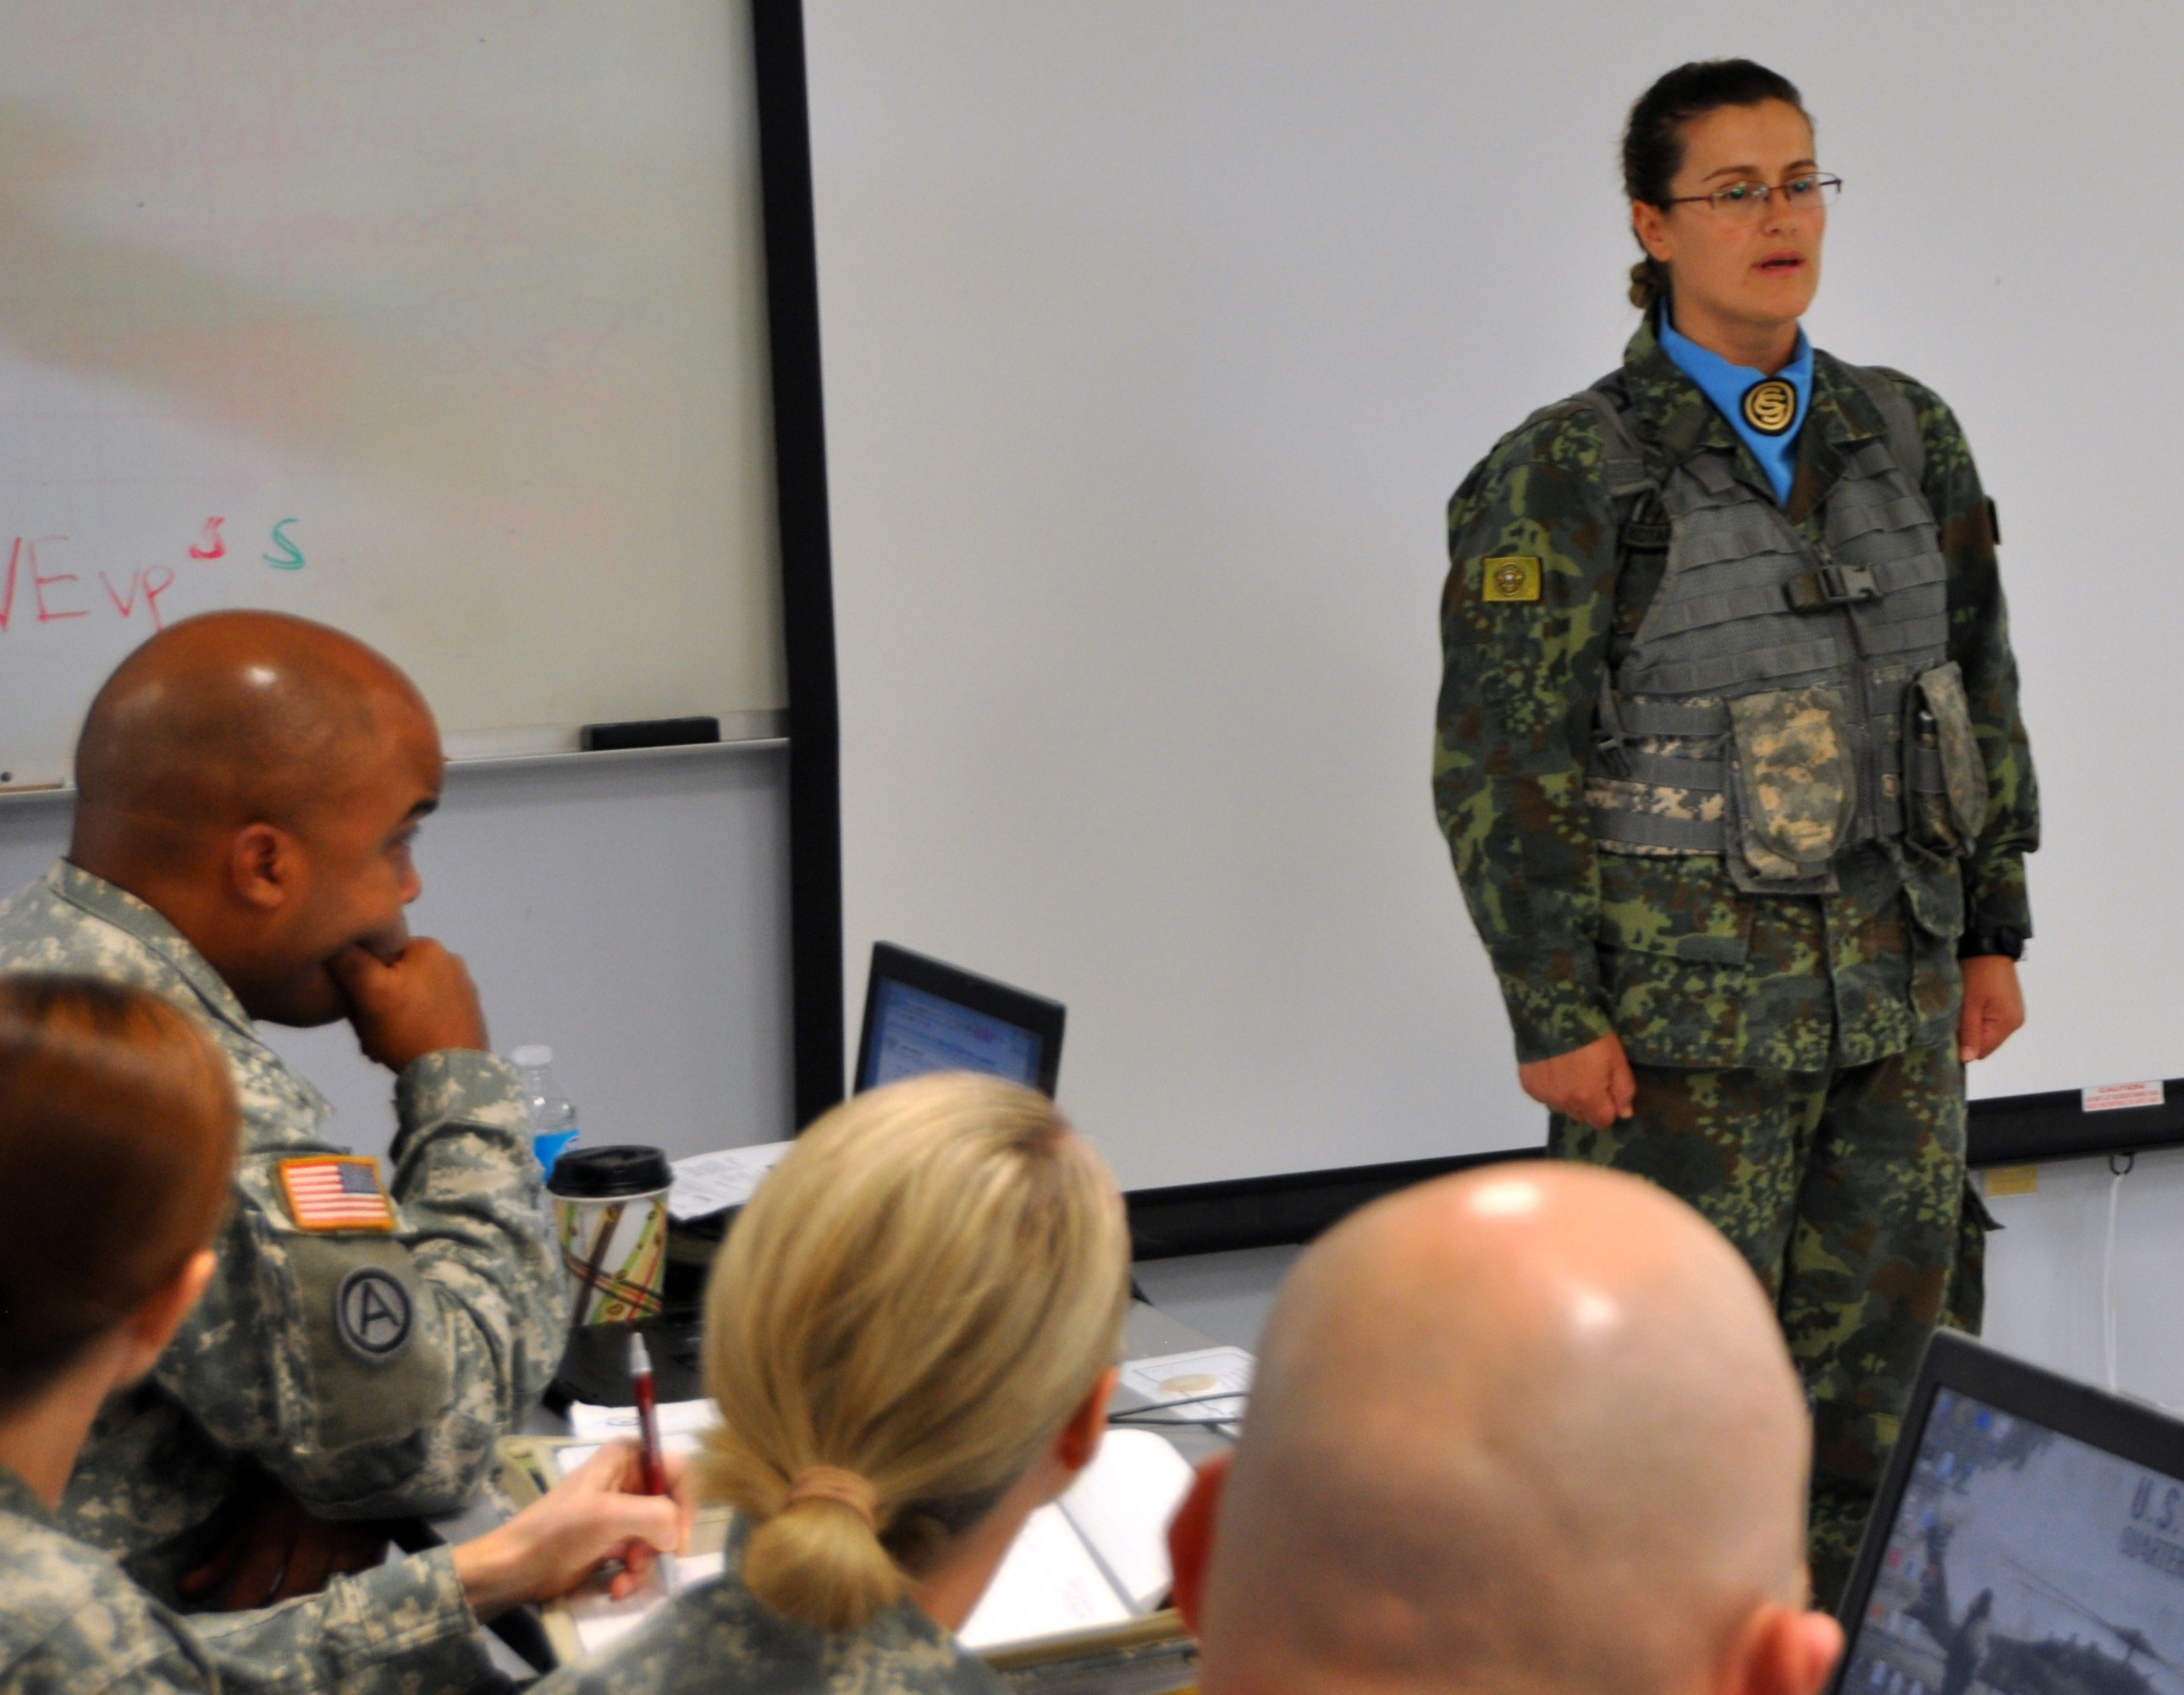 New jersey guard hosting unique ocs for albanians article the united states army - Ocs officer candidate school ...